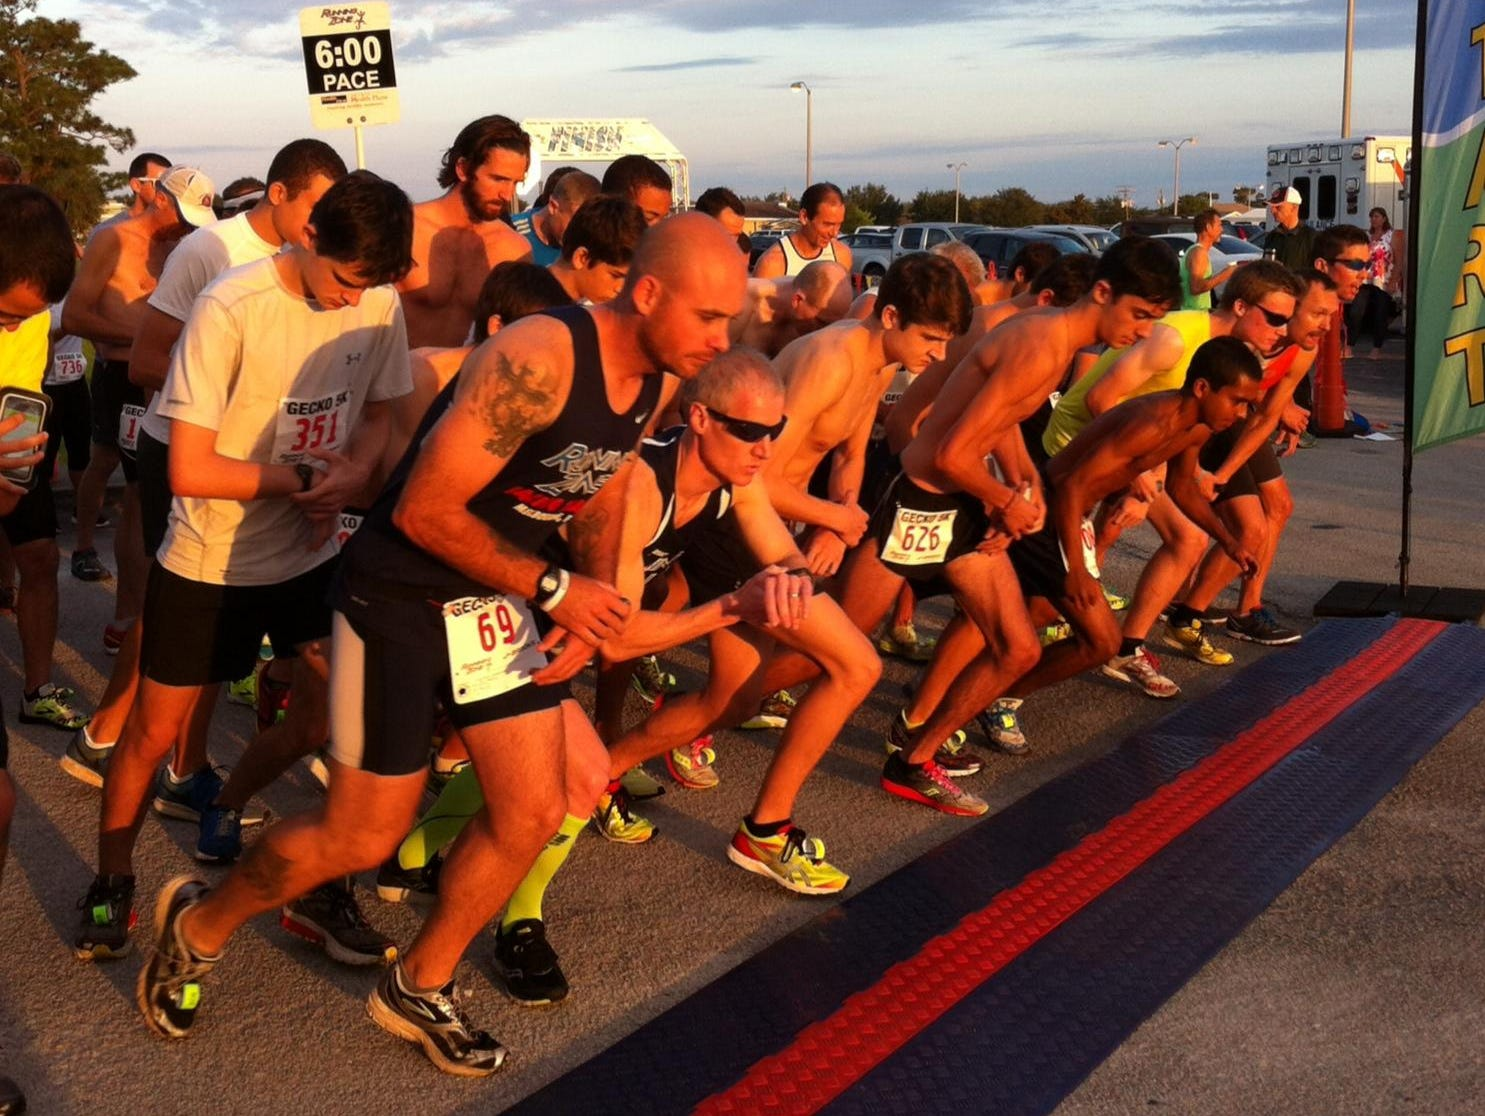 Runners get ready to start the 2015 Run for the Gecko 5K in Melbourne.